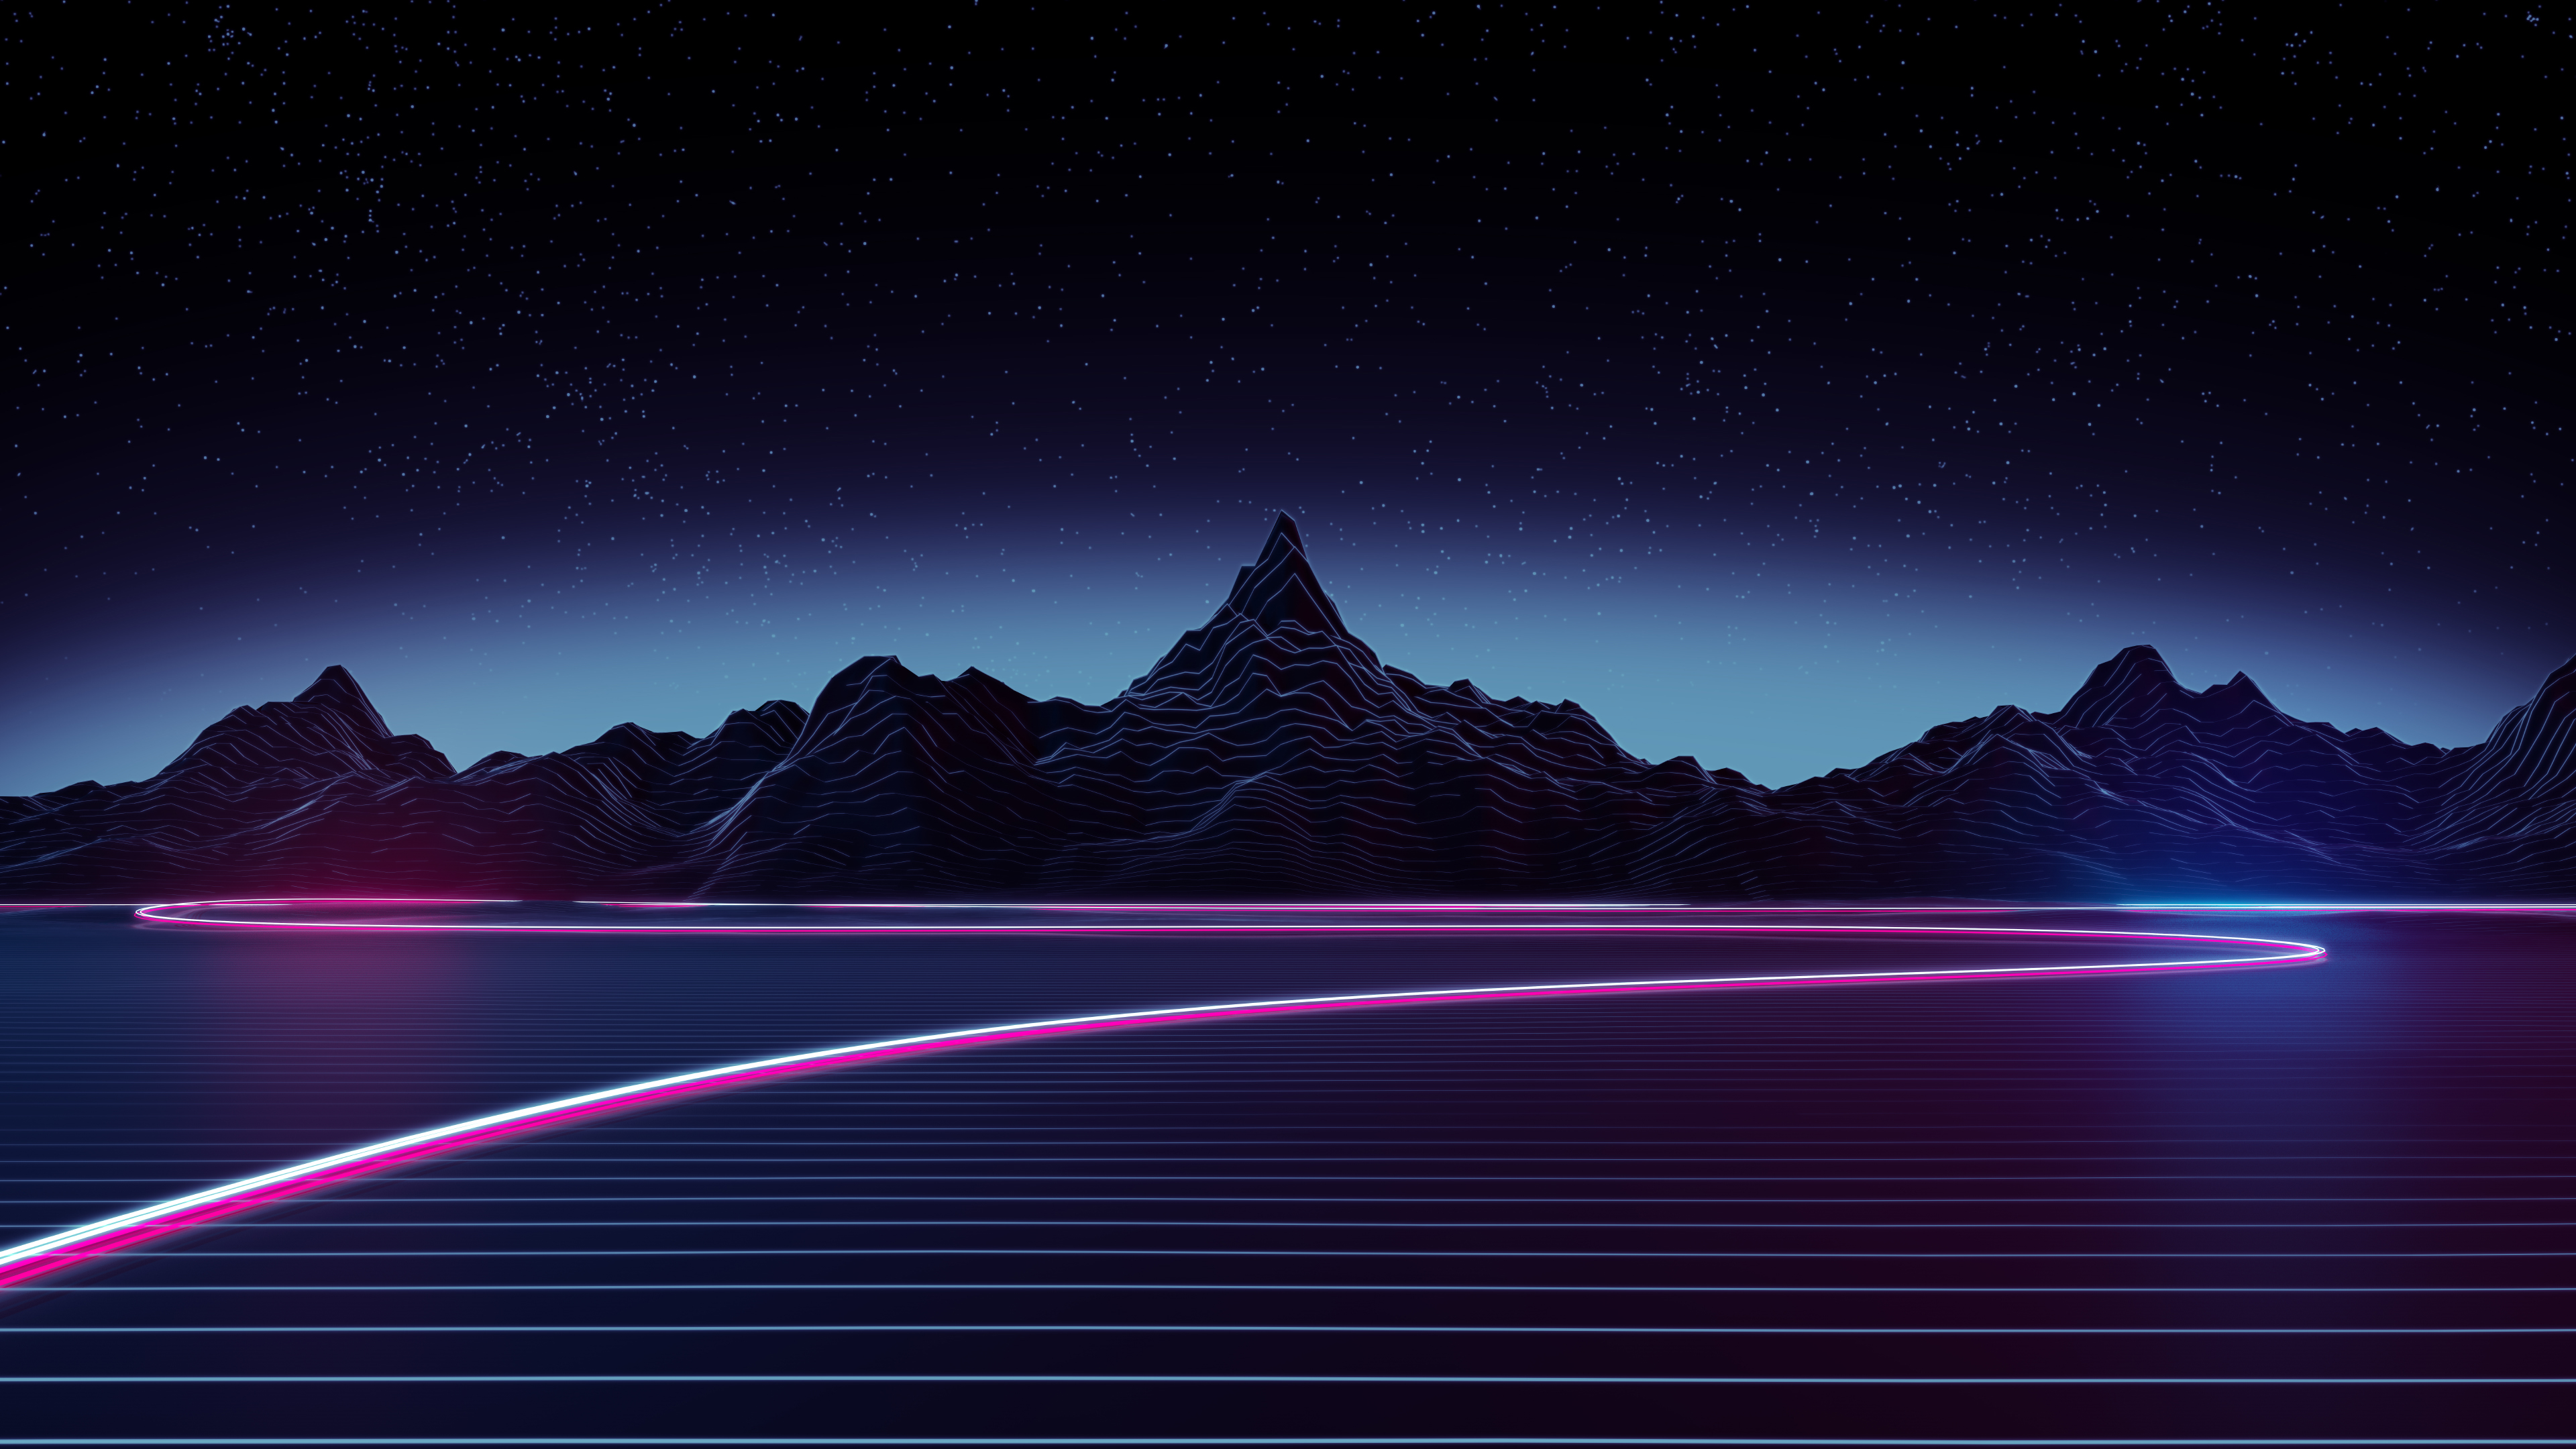 2048x1152 neon highway 4k 2048x1152 resolution hd 4k - Desktop wallpaper 4k ...